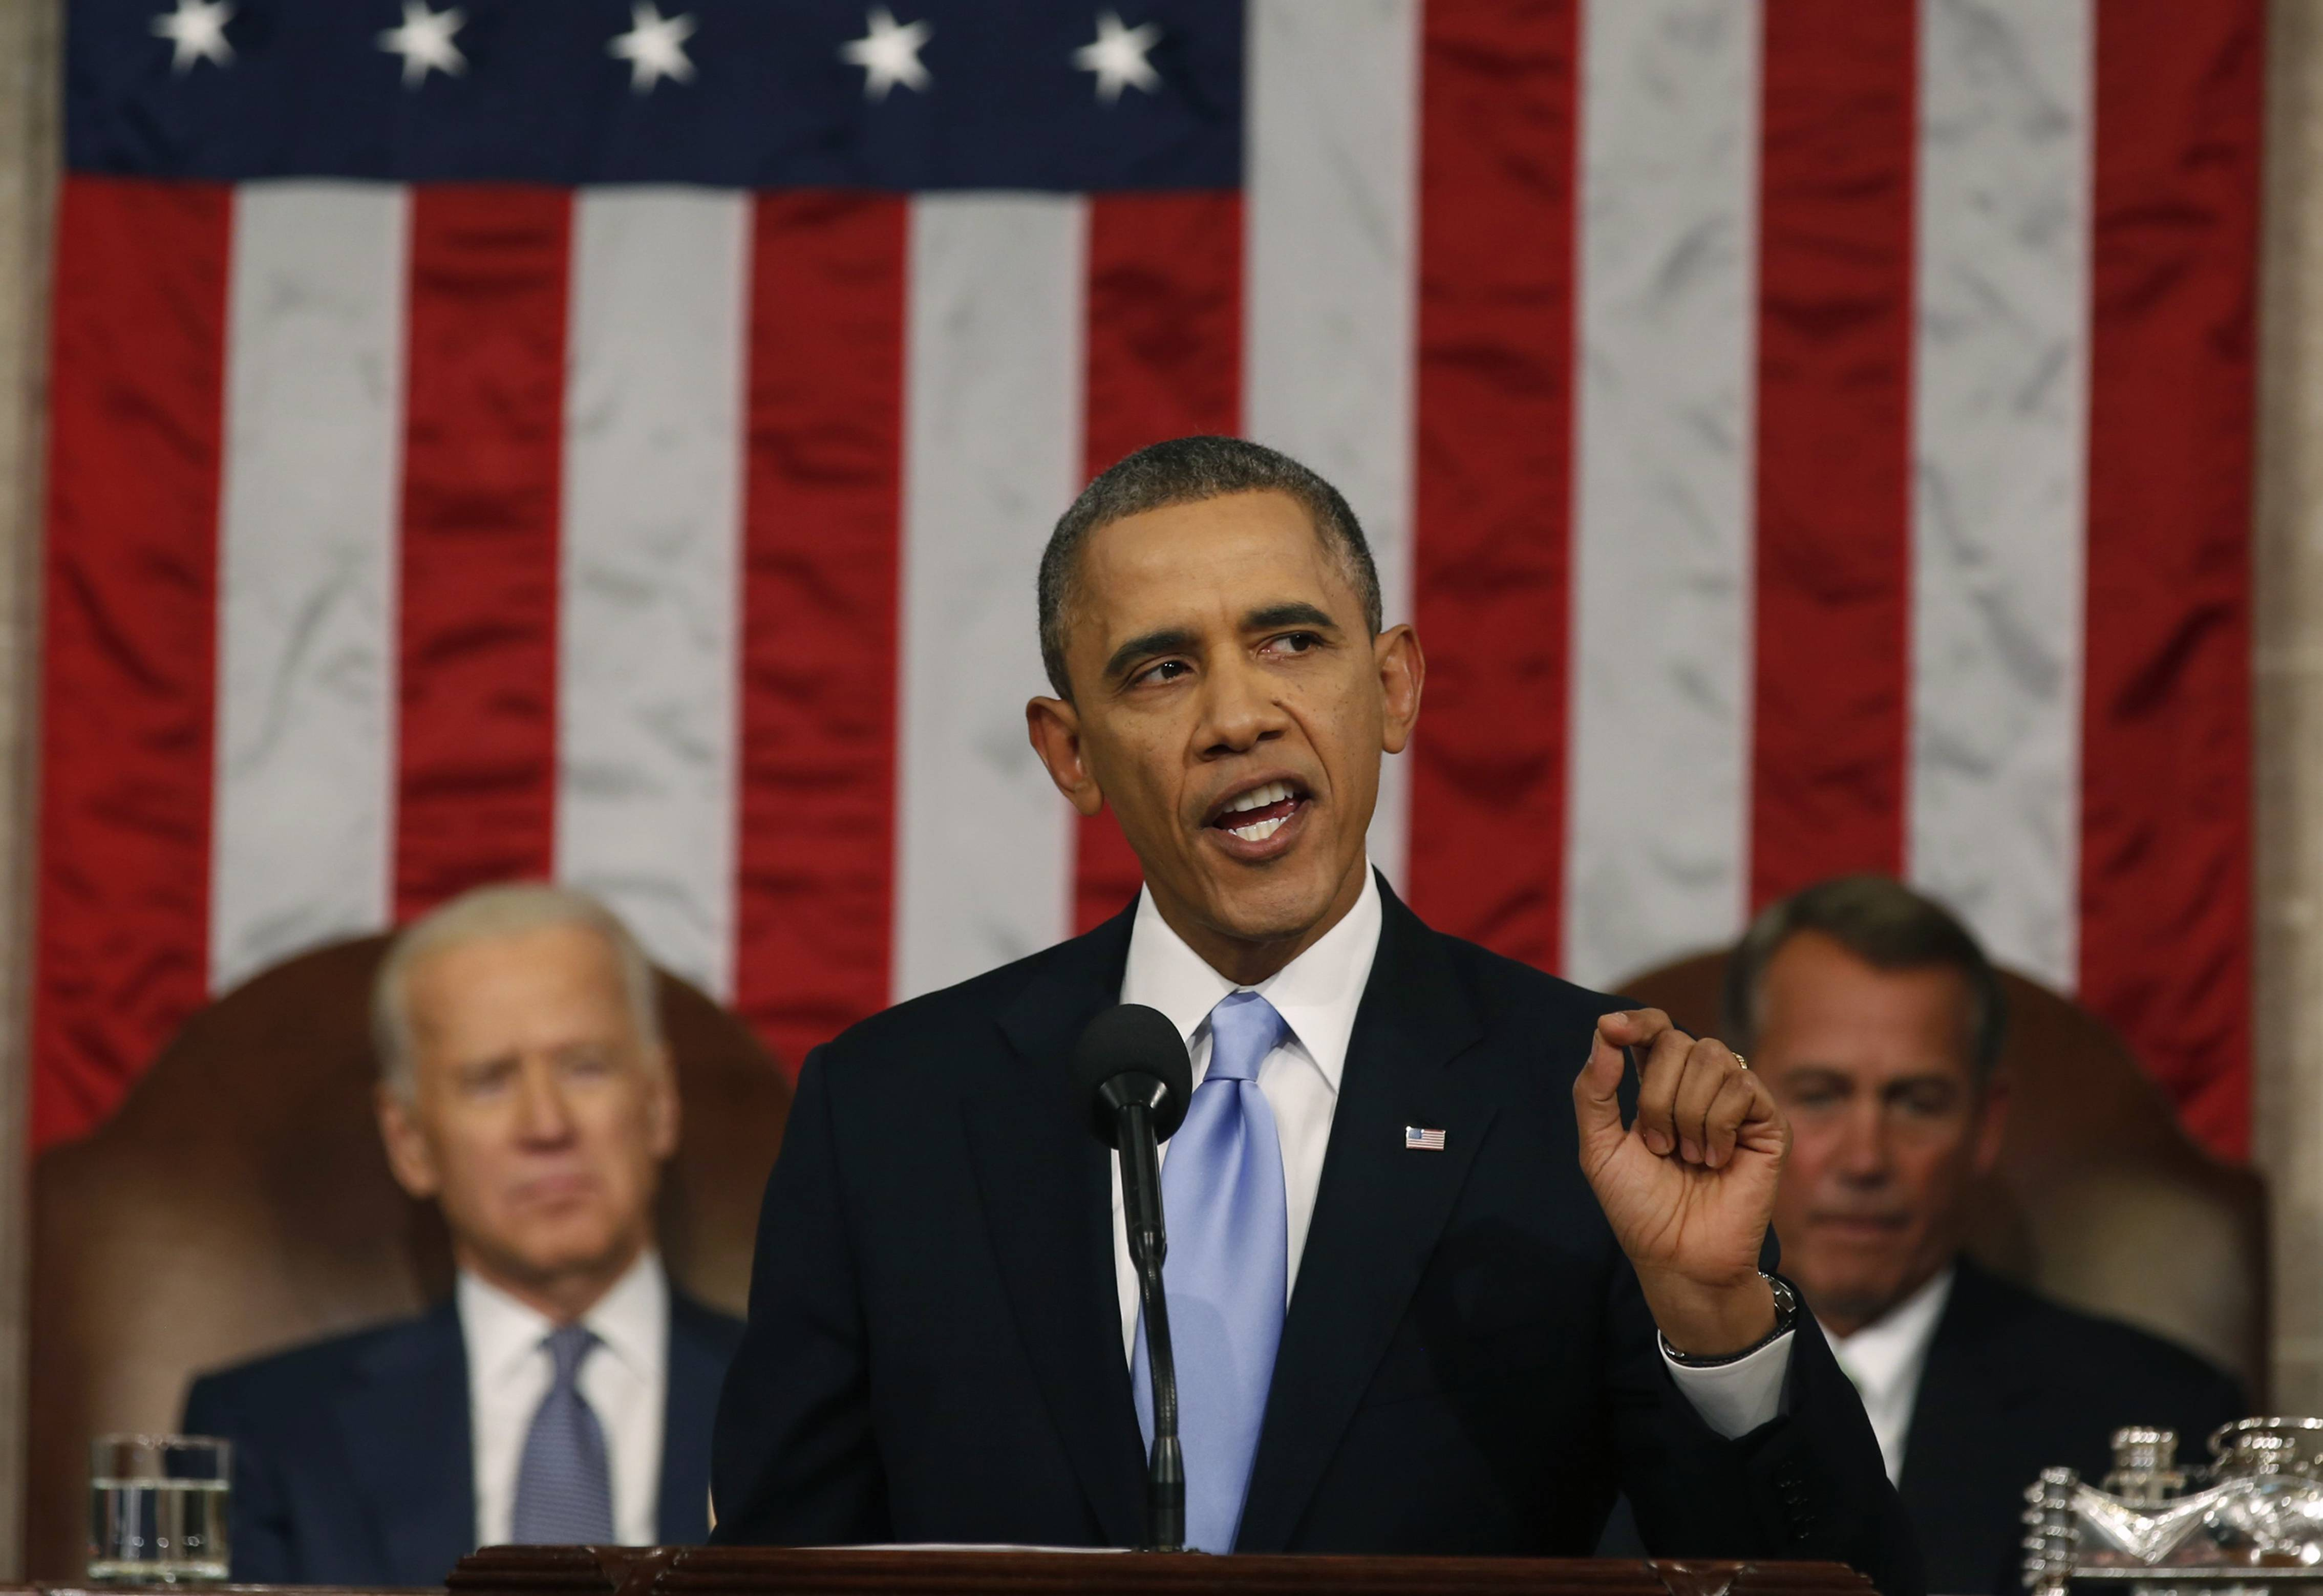 President Barack Obama delivers the State of Union address Tuesday before a joint session of Congress in the House chamber on Capitol Hill in Washington as Vice President Joe Biden and House Speaker John Boehner of Ohio listen.